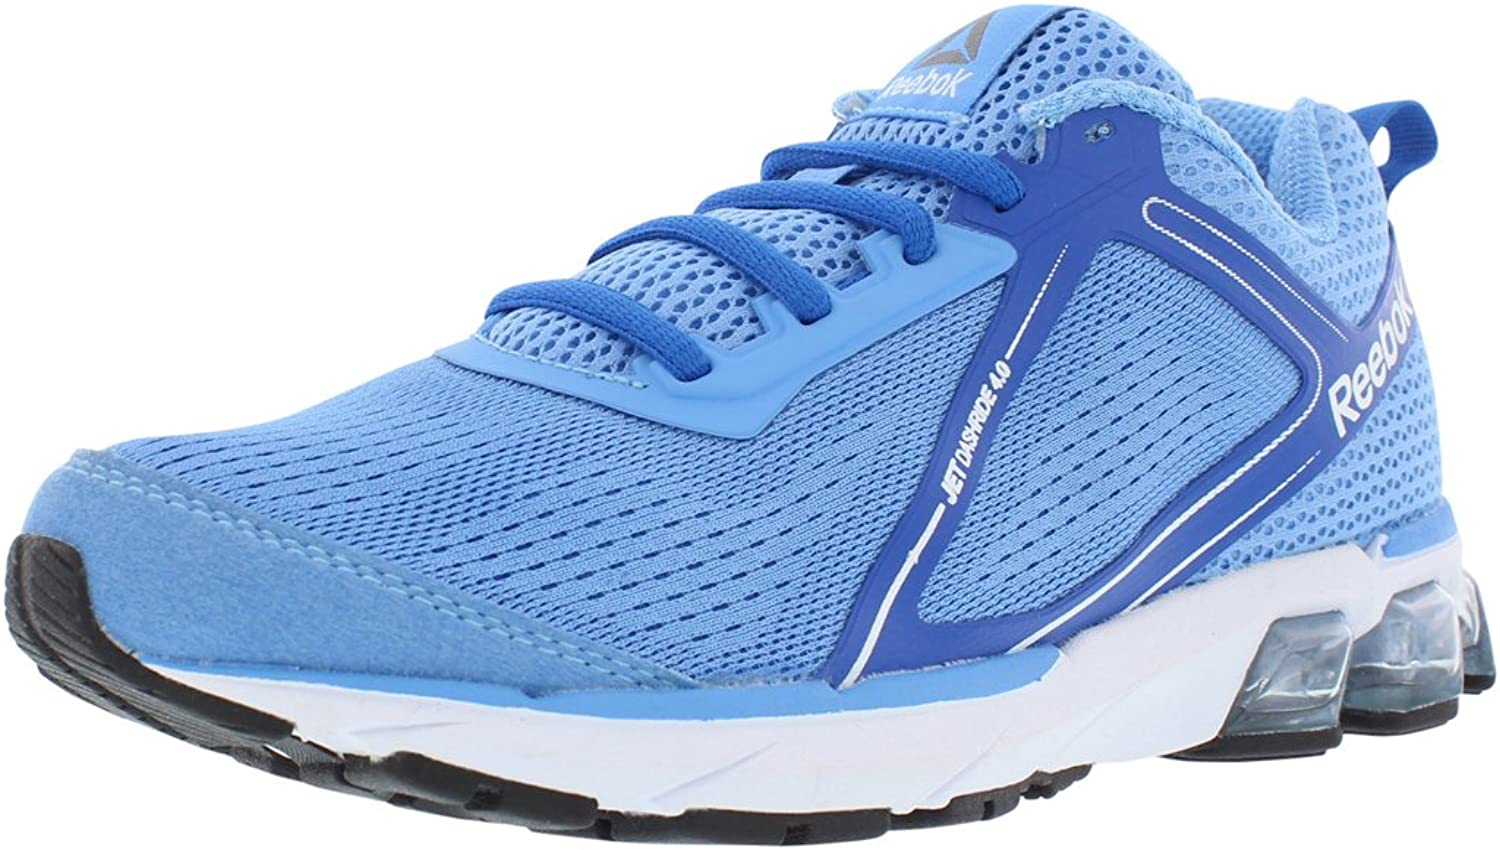 Reebok Jet Dashride 4.0 Running Women's shoes bluee White